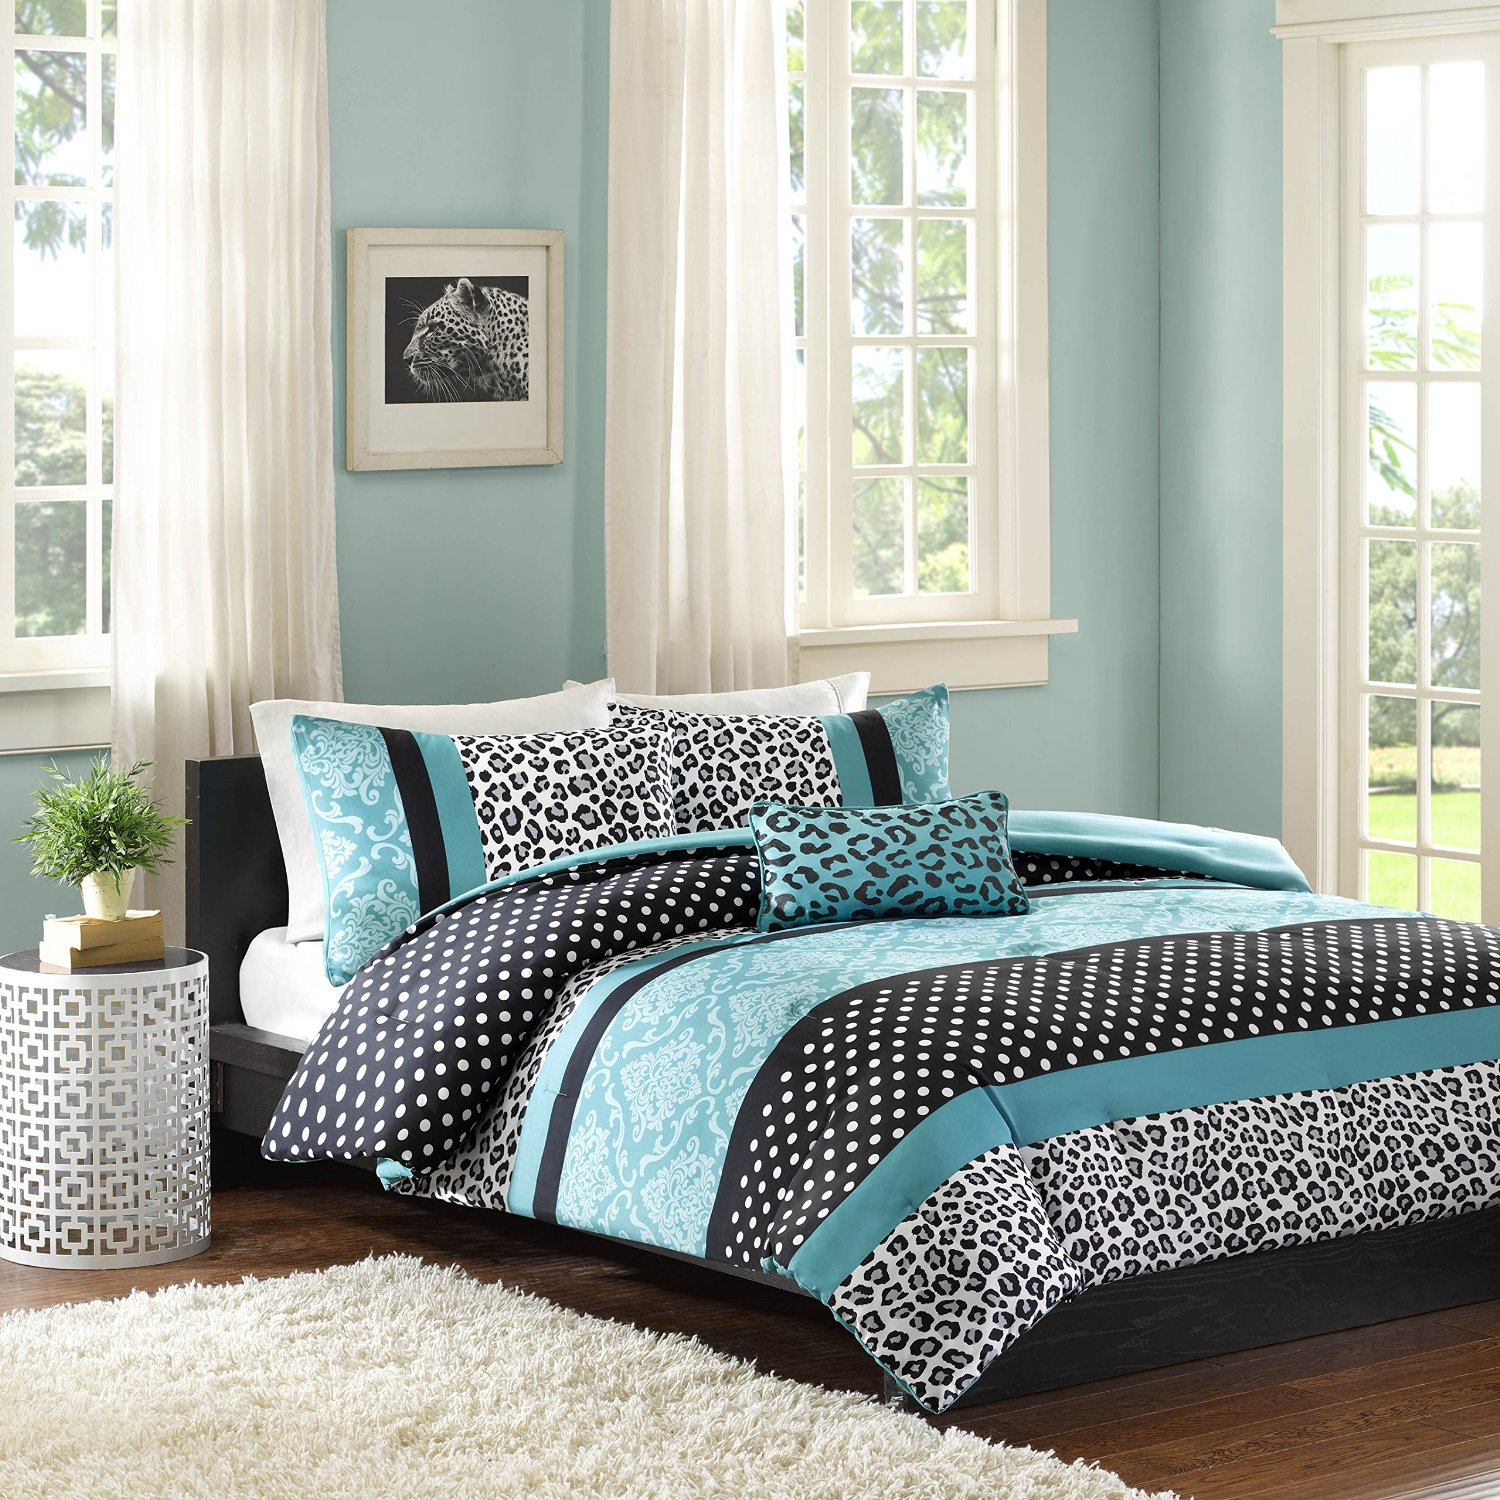 Pacific Coast Comforter | Pacific Coast Feather Down Comforter | Summer Comforter